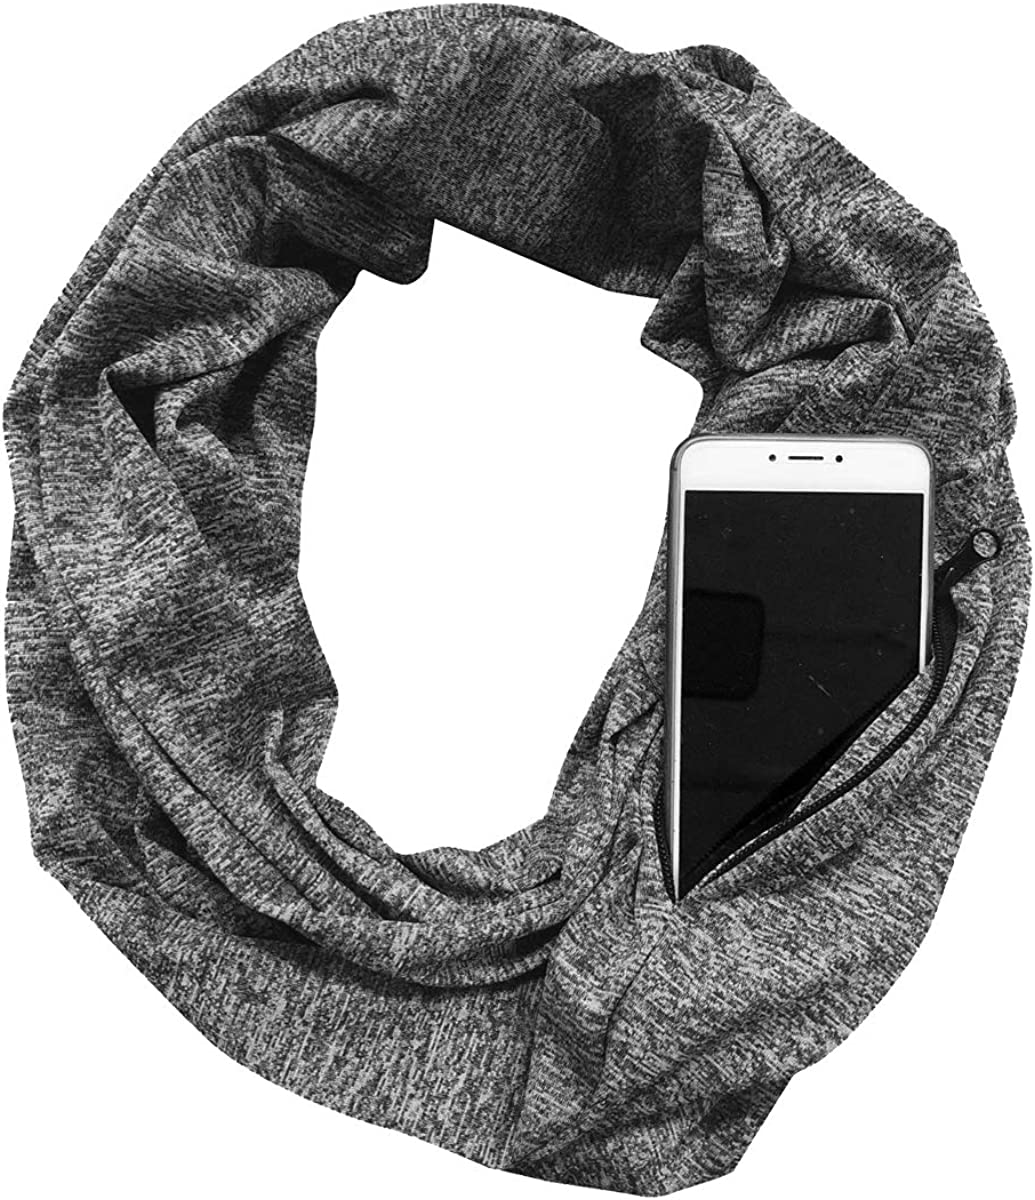 Unisex Infinity Scarf with Zipper Pocket Colorful Travel Journey Scarves Wrap Shawl